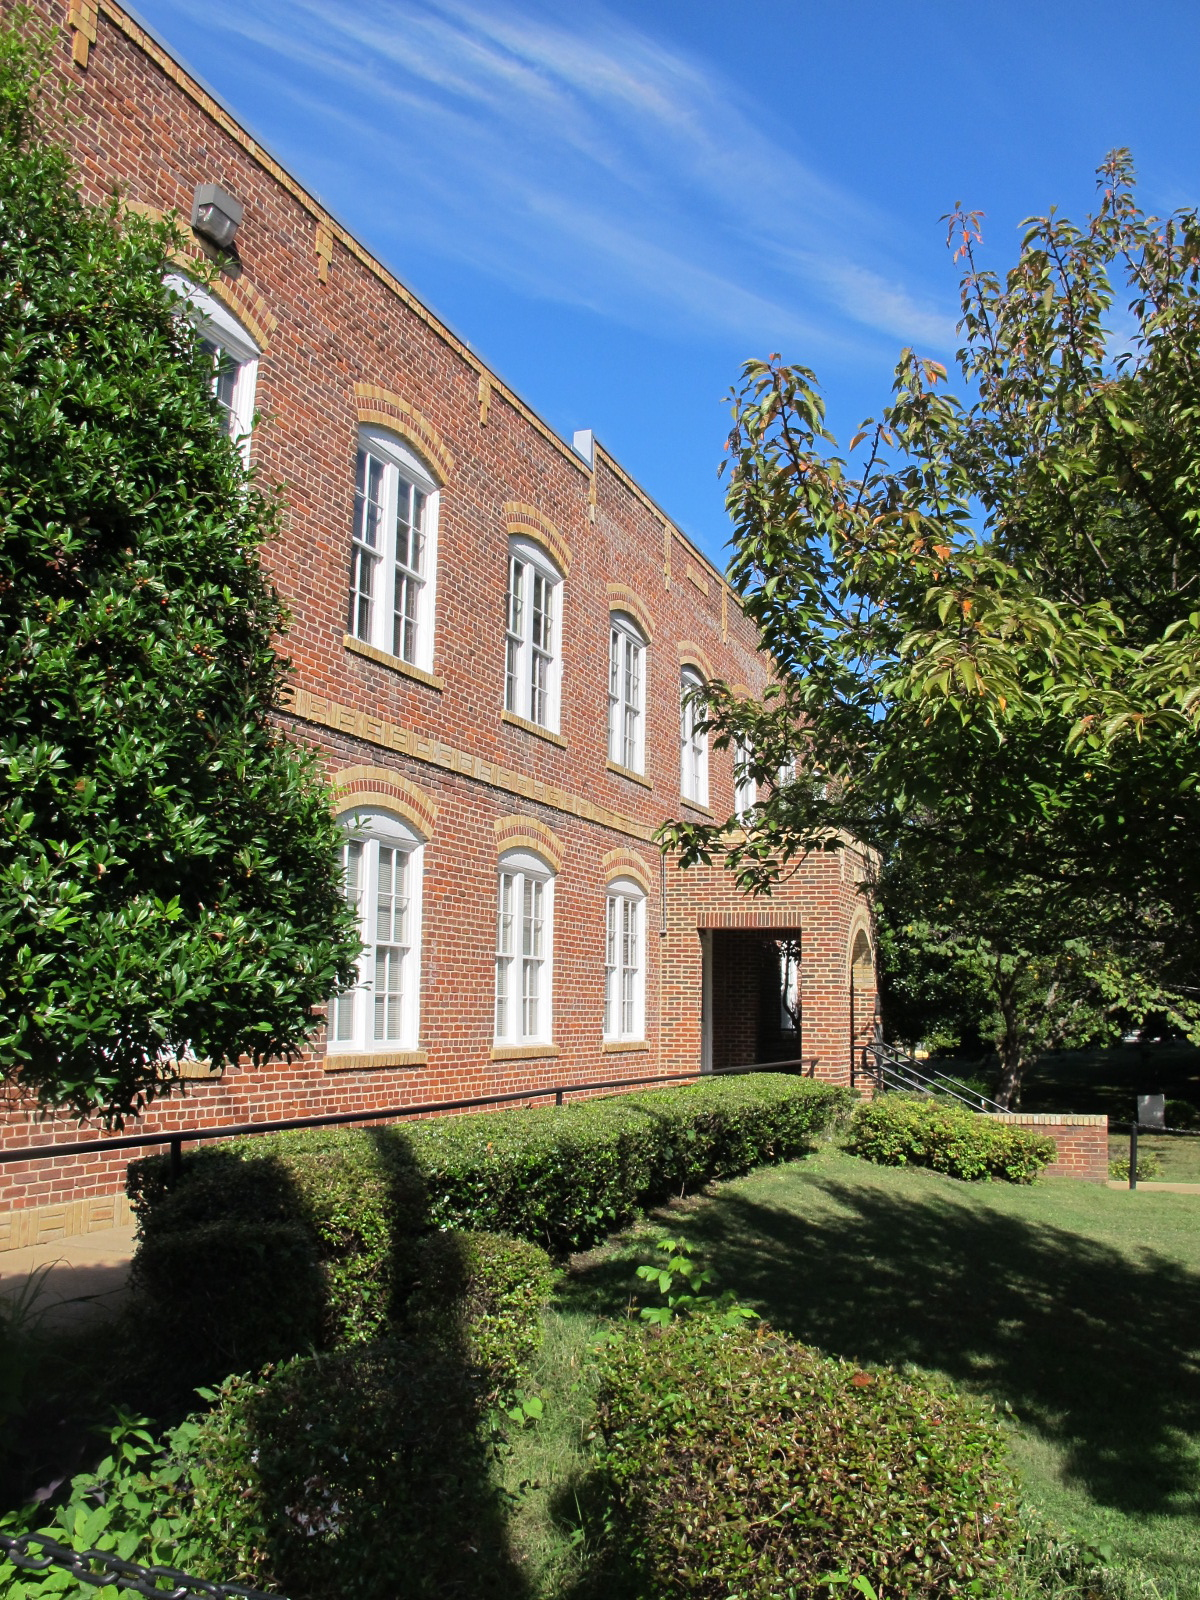 Lane College Library